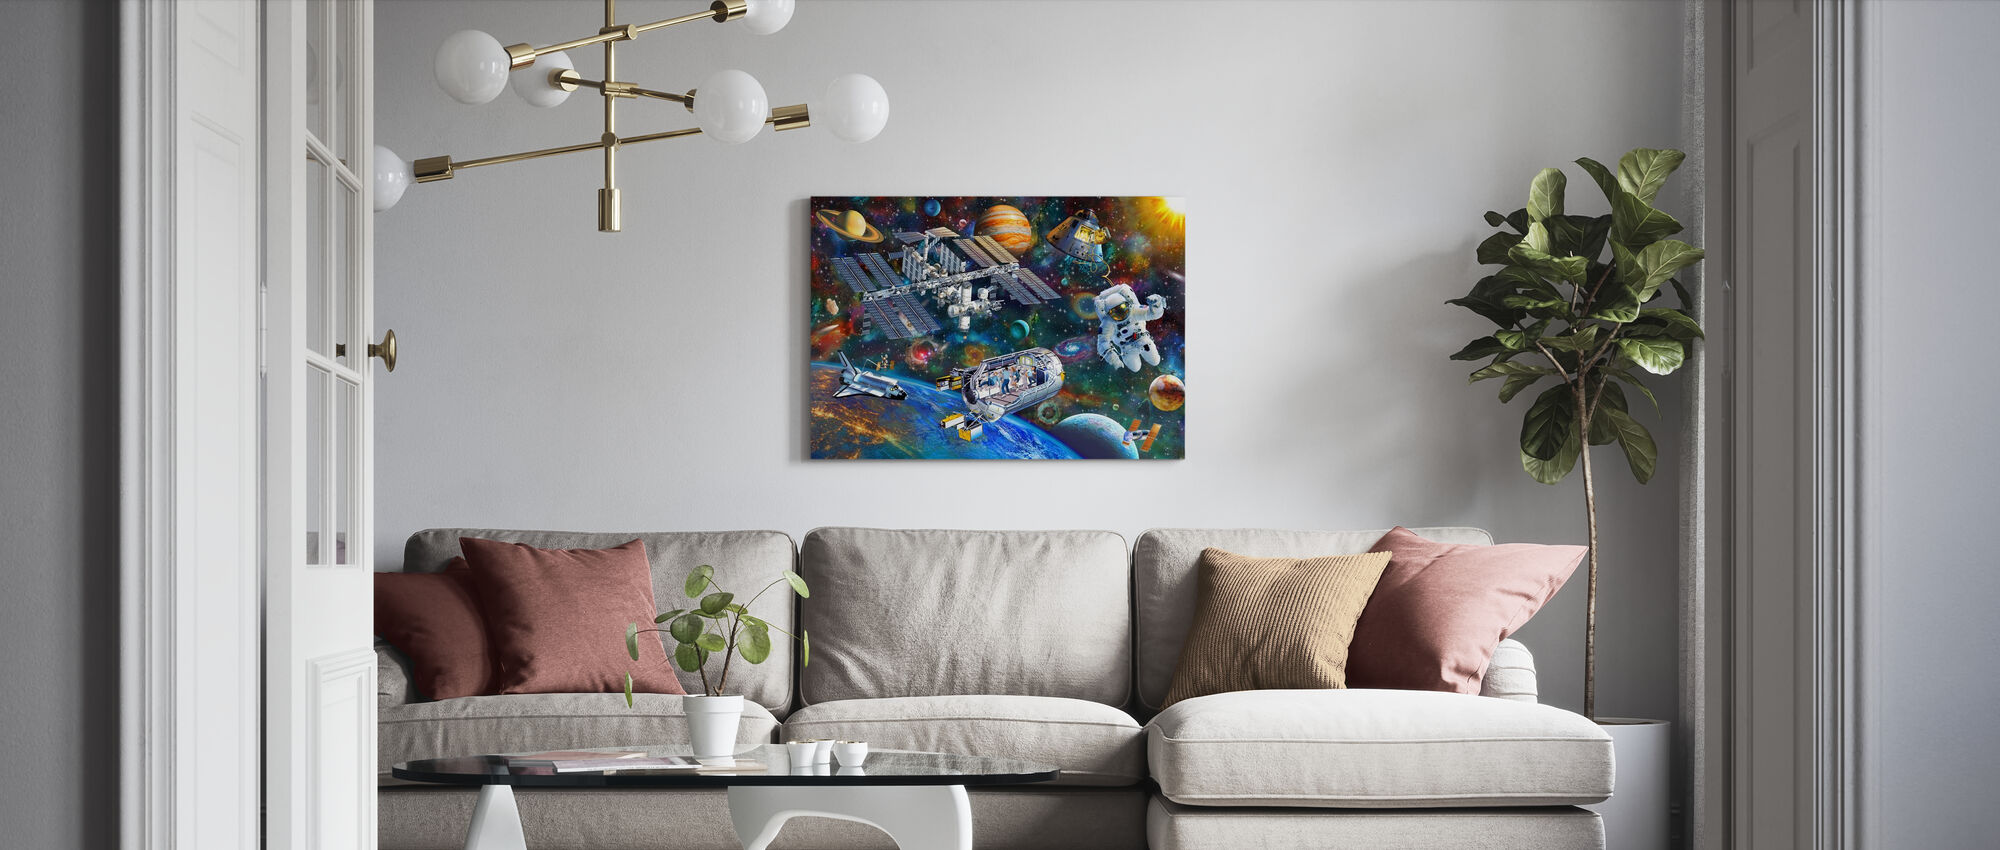 Space Station - Canvas print - Living Room